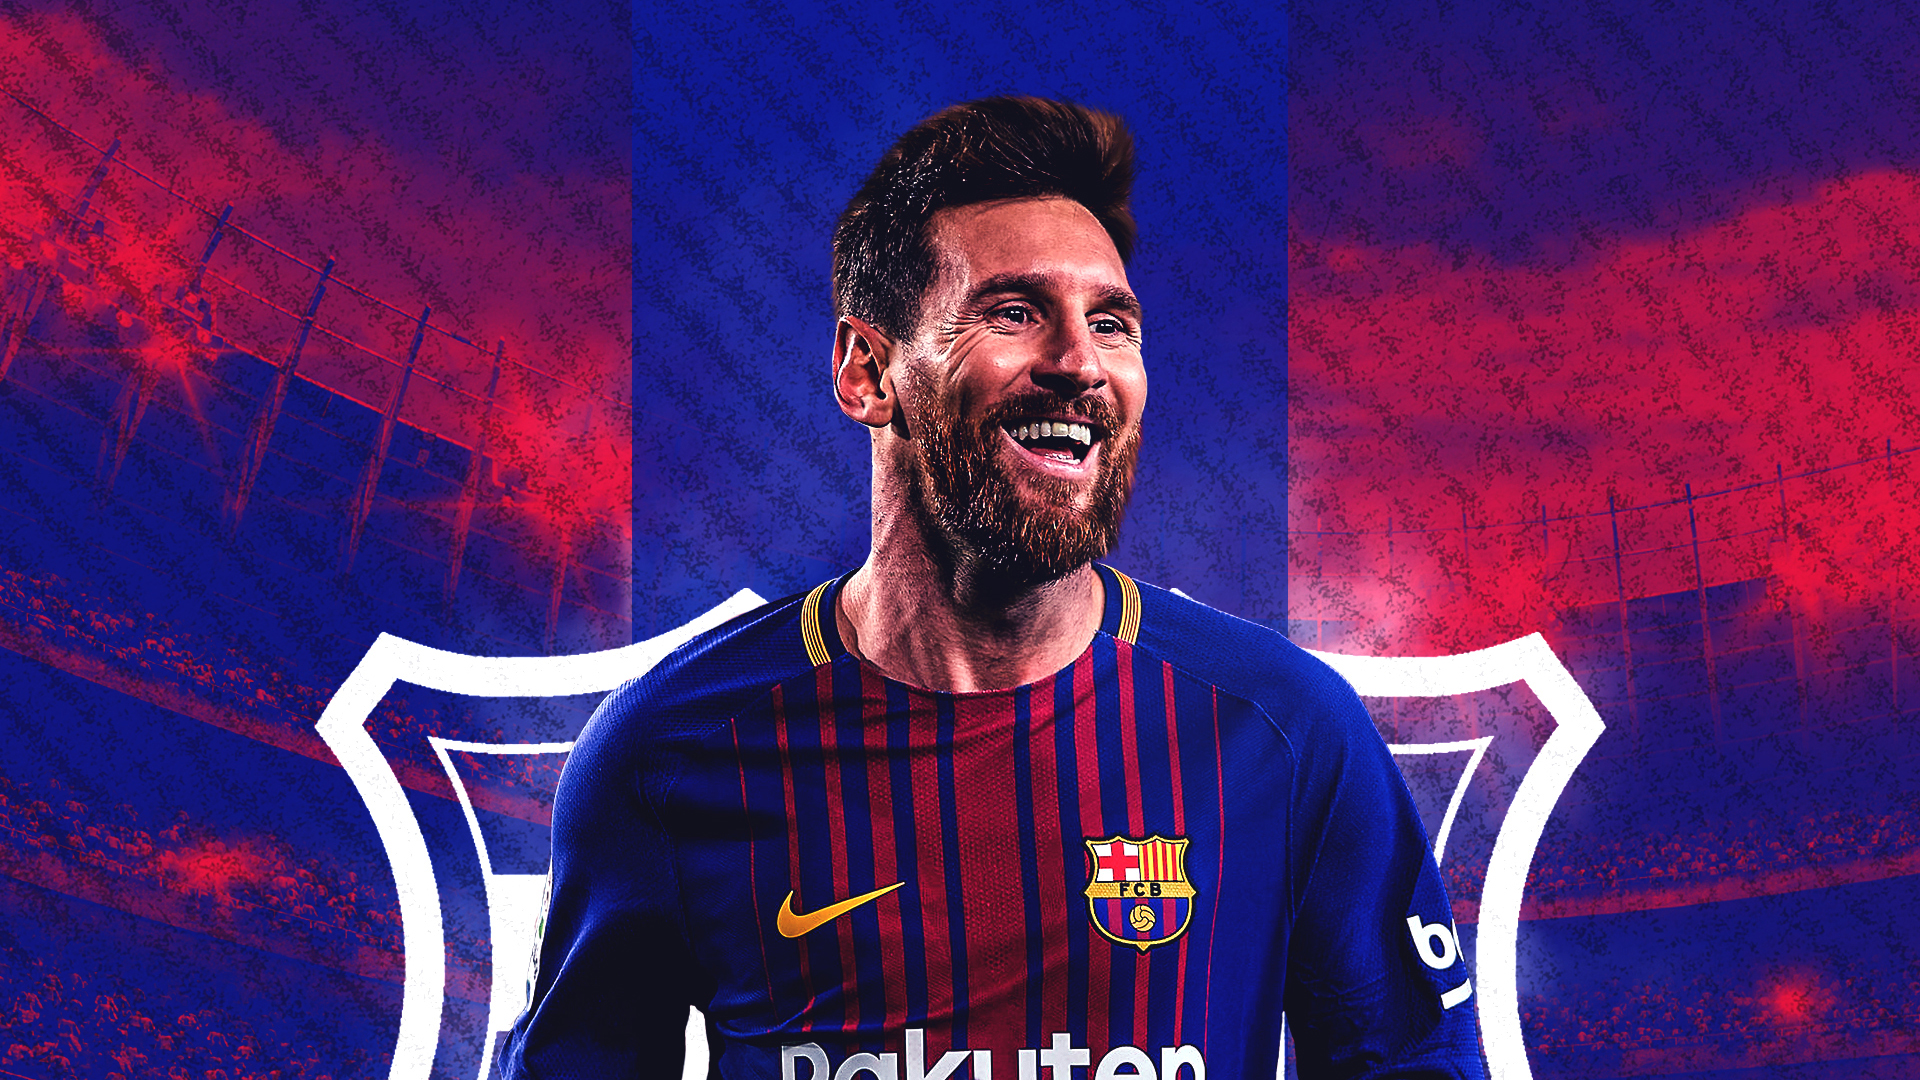 Wallpaper Lionel Messi Jordan